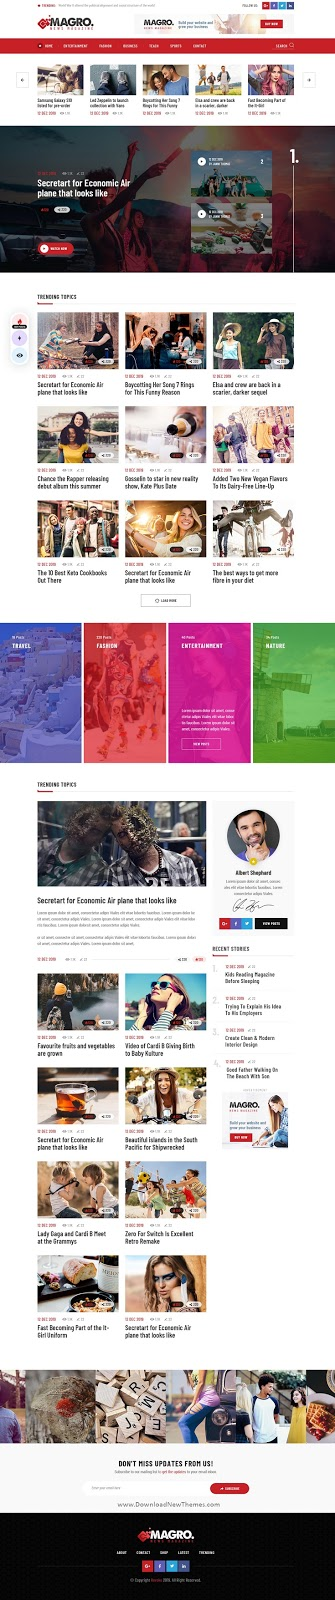 Blog & News Magazine PSD Template